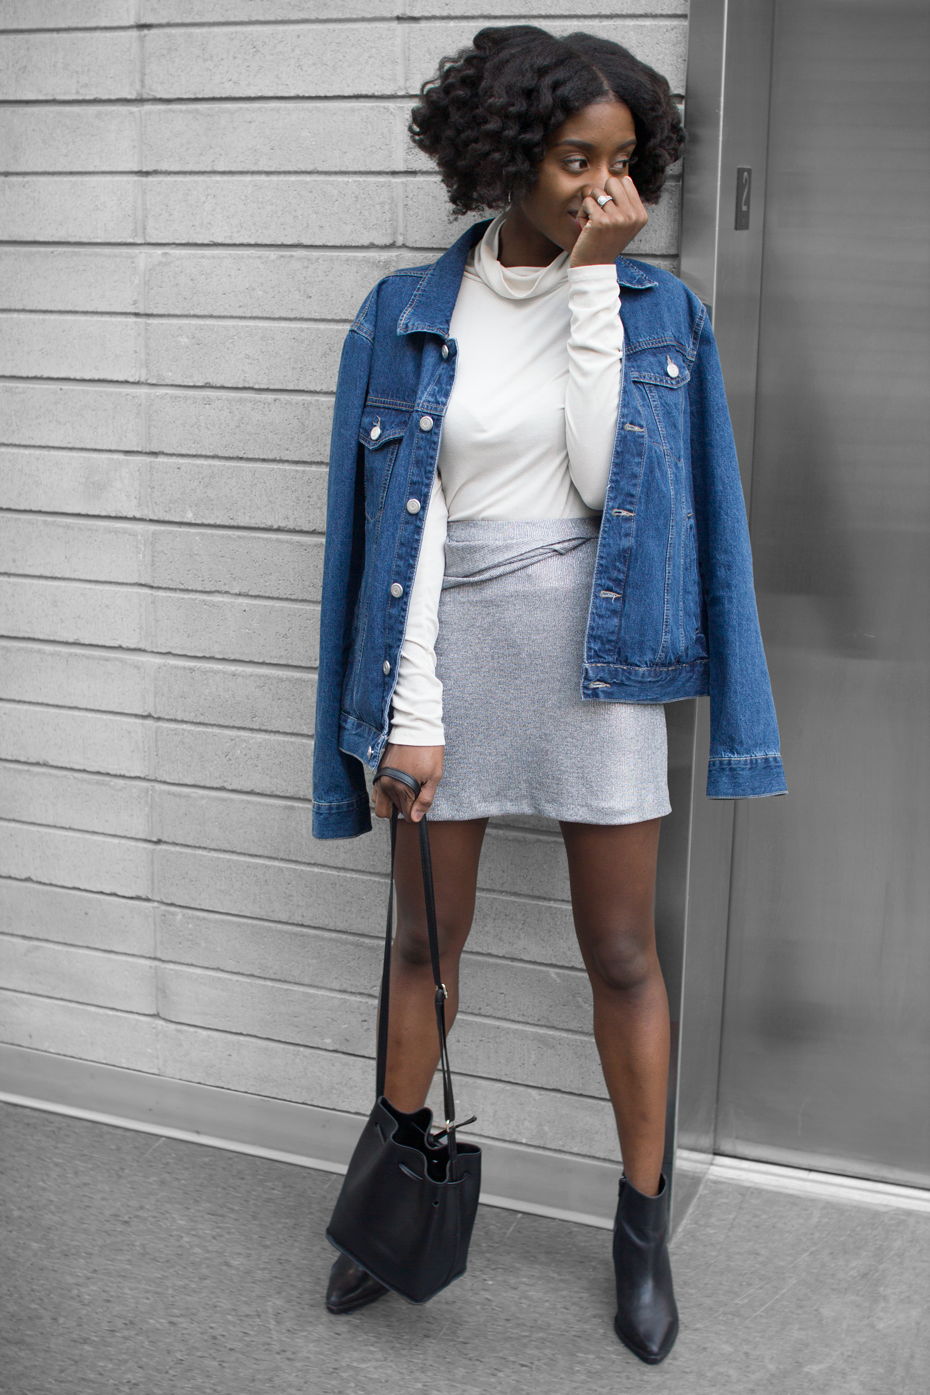 HOW-TO-WEAR-A-SILVER-ZARA-SKIRT-TWO-WAYS